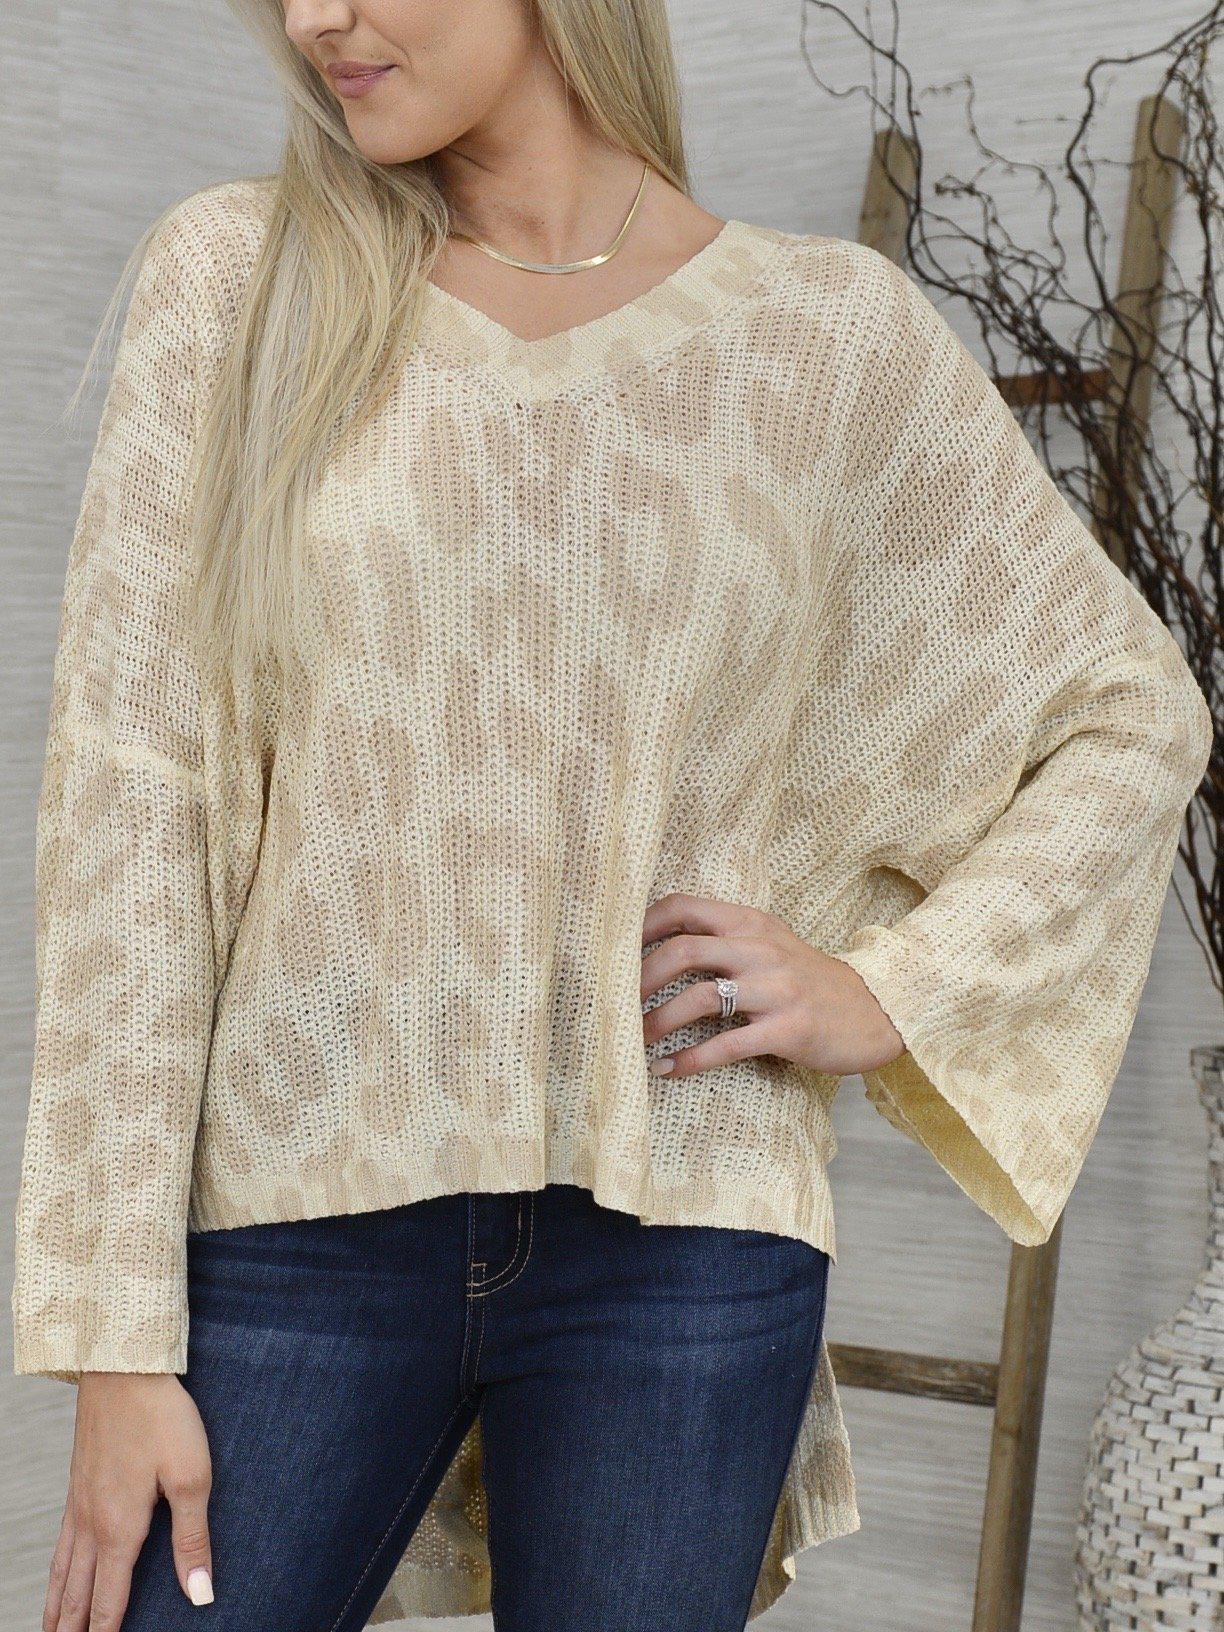 On the Town Sweater-Women's -New Arrivals-Runway Seven